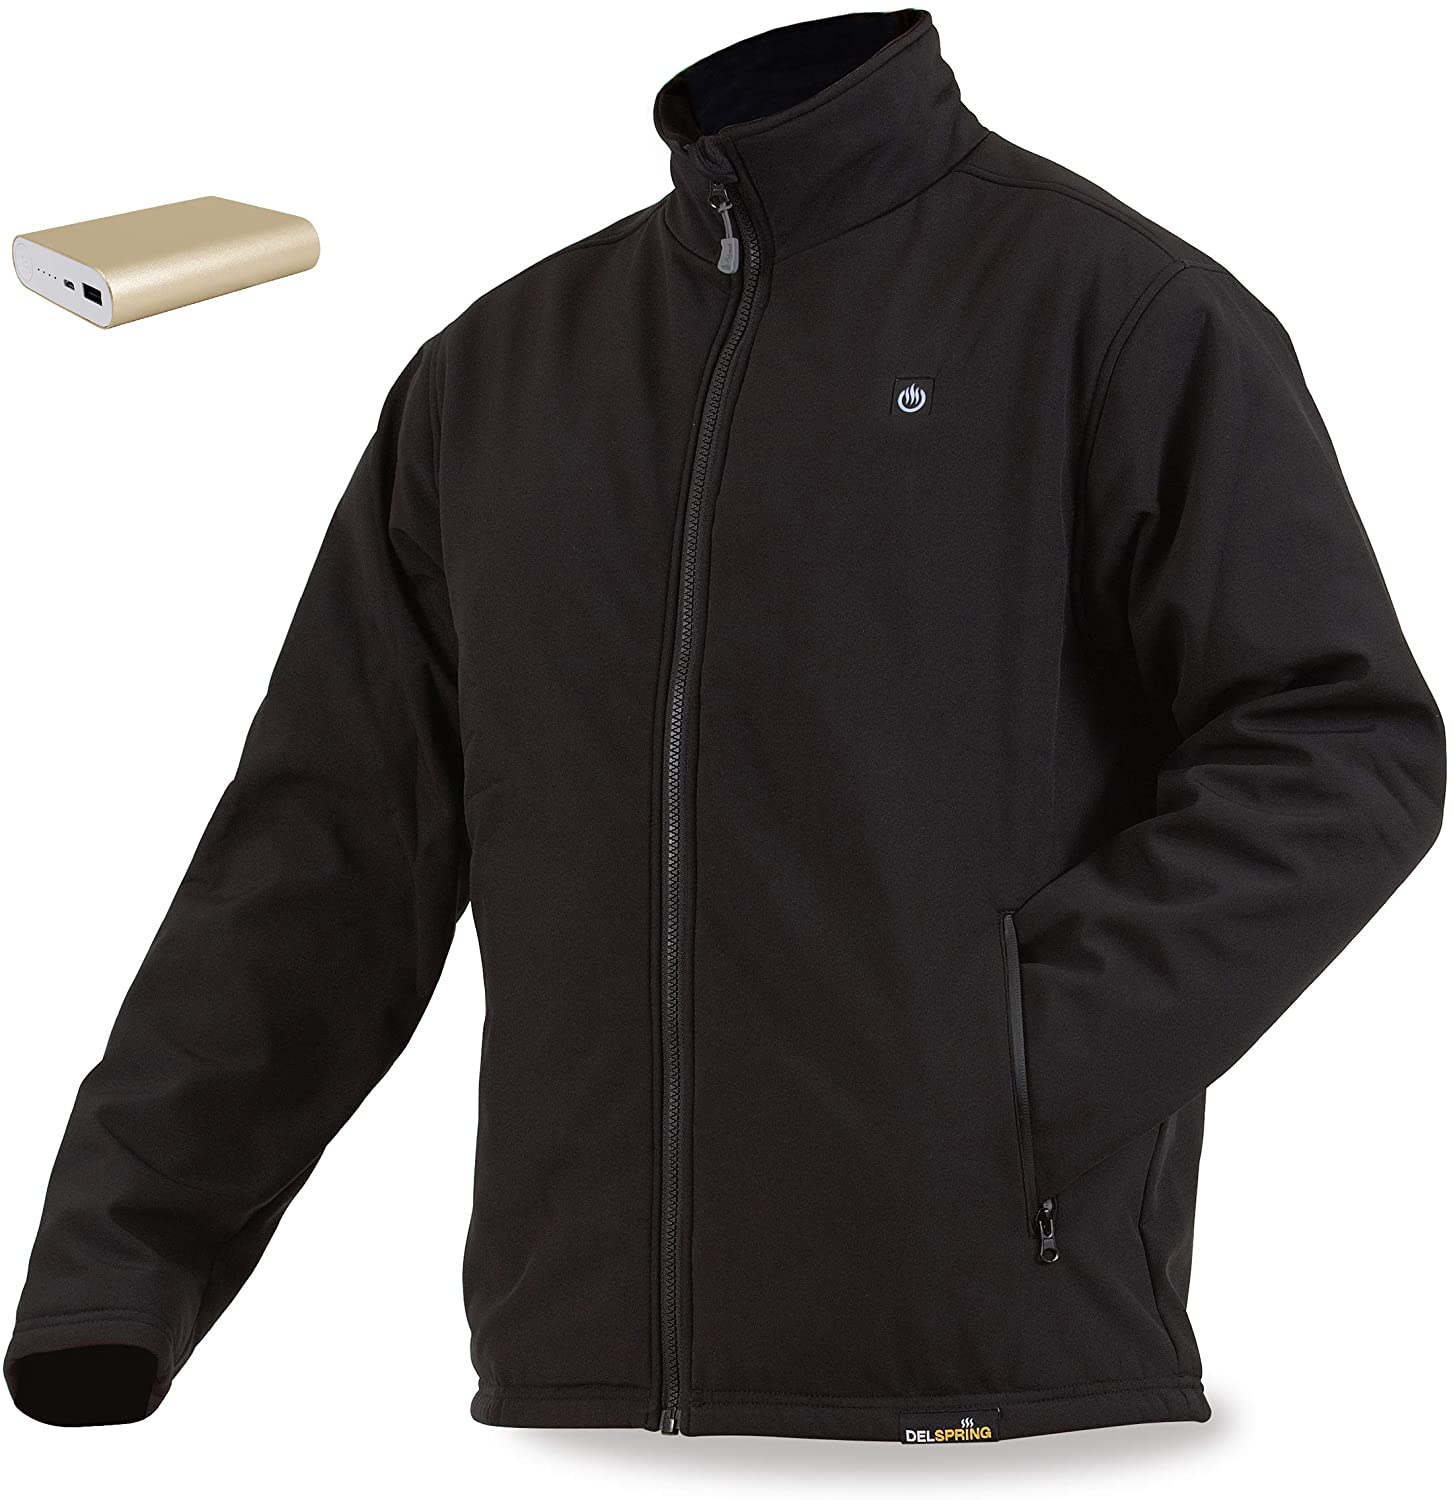 delspring Men's Soft Shell Heated Jacket with Battery 12 Hour- Windproof Heated Jacket for Men